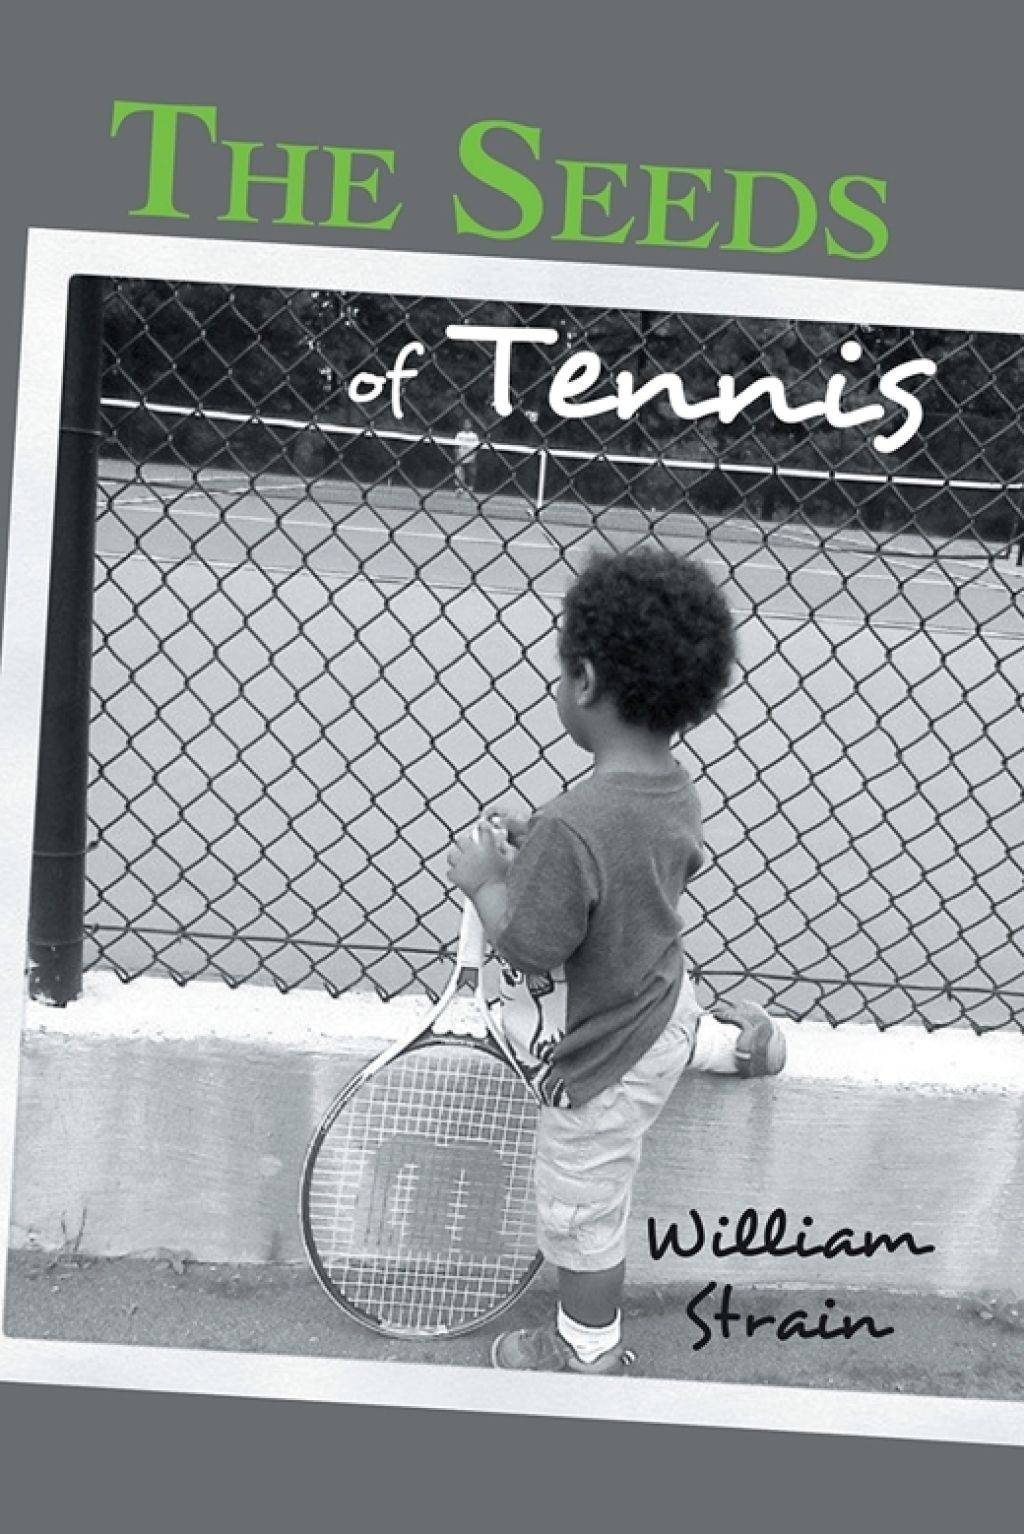 what is seed in tennis